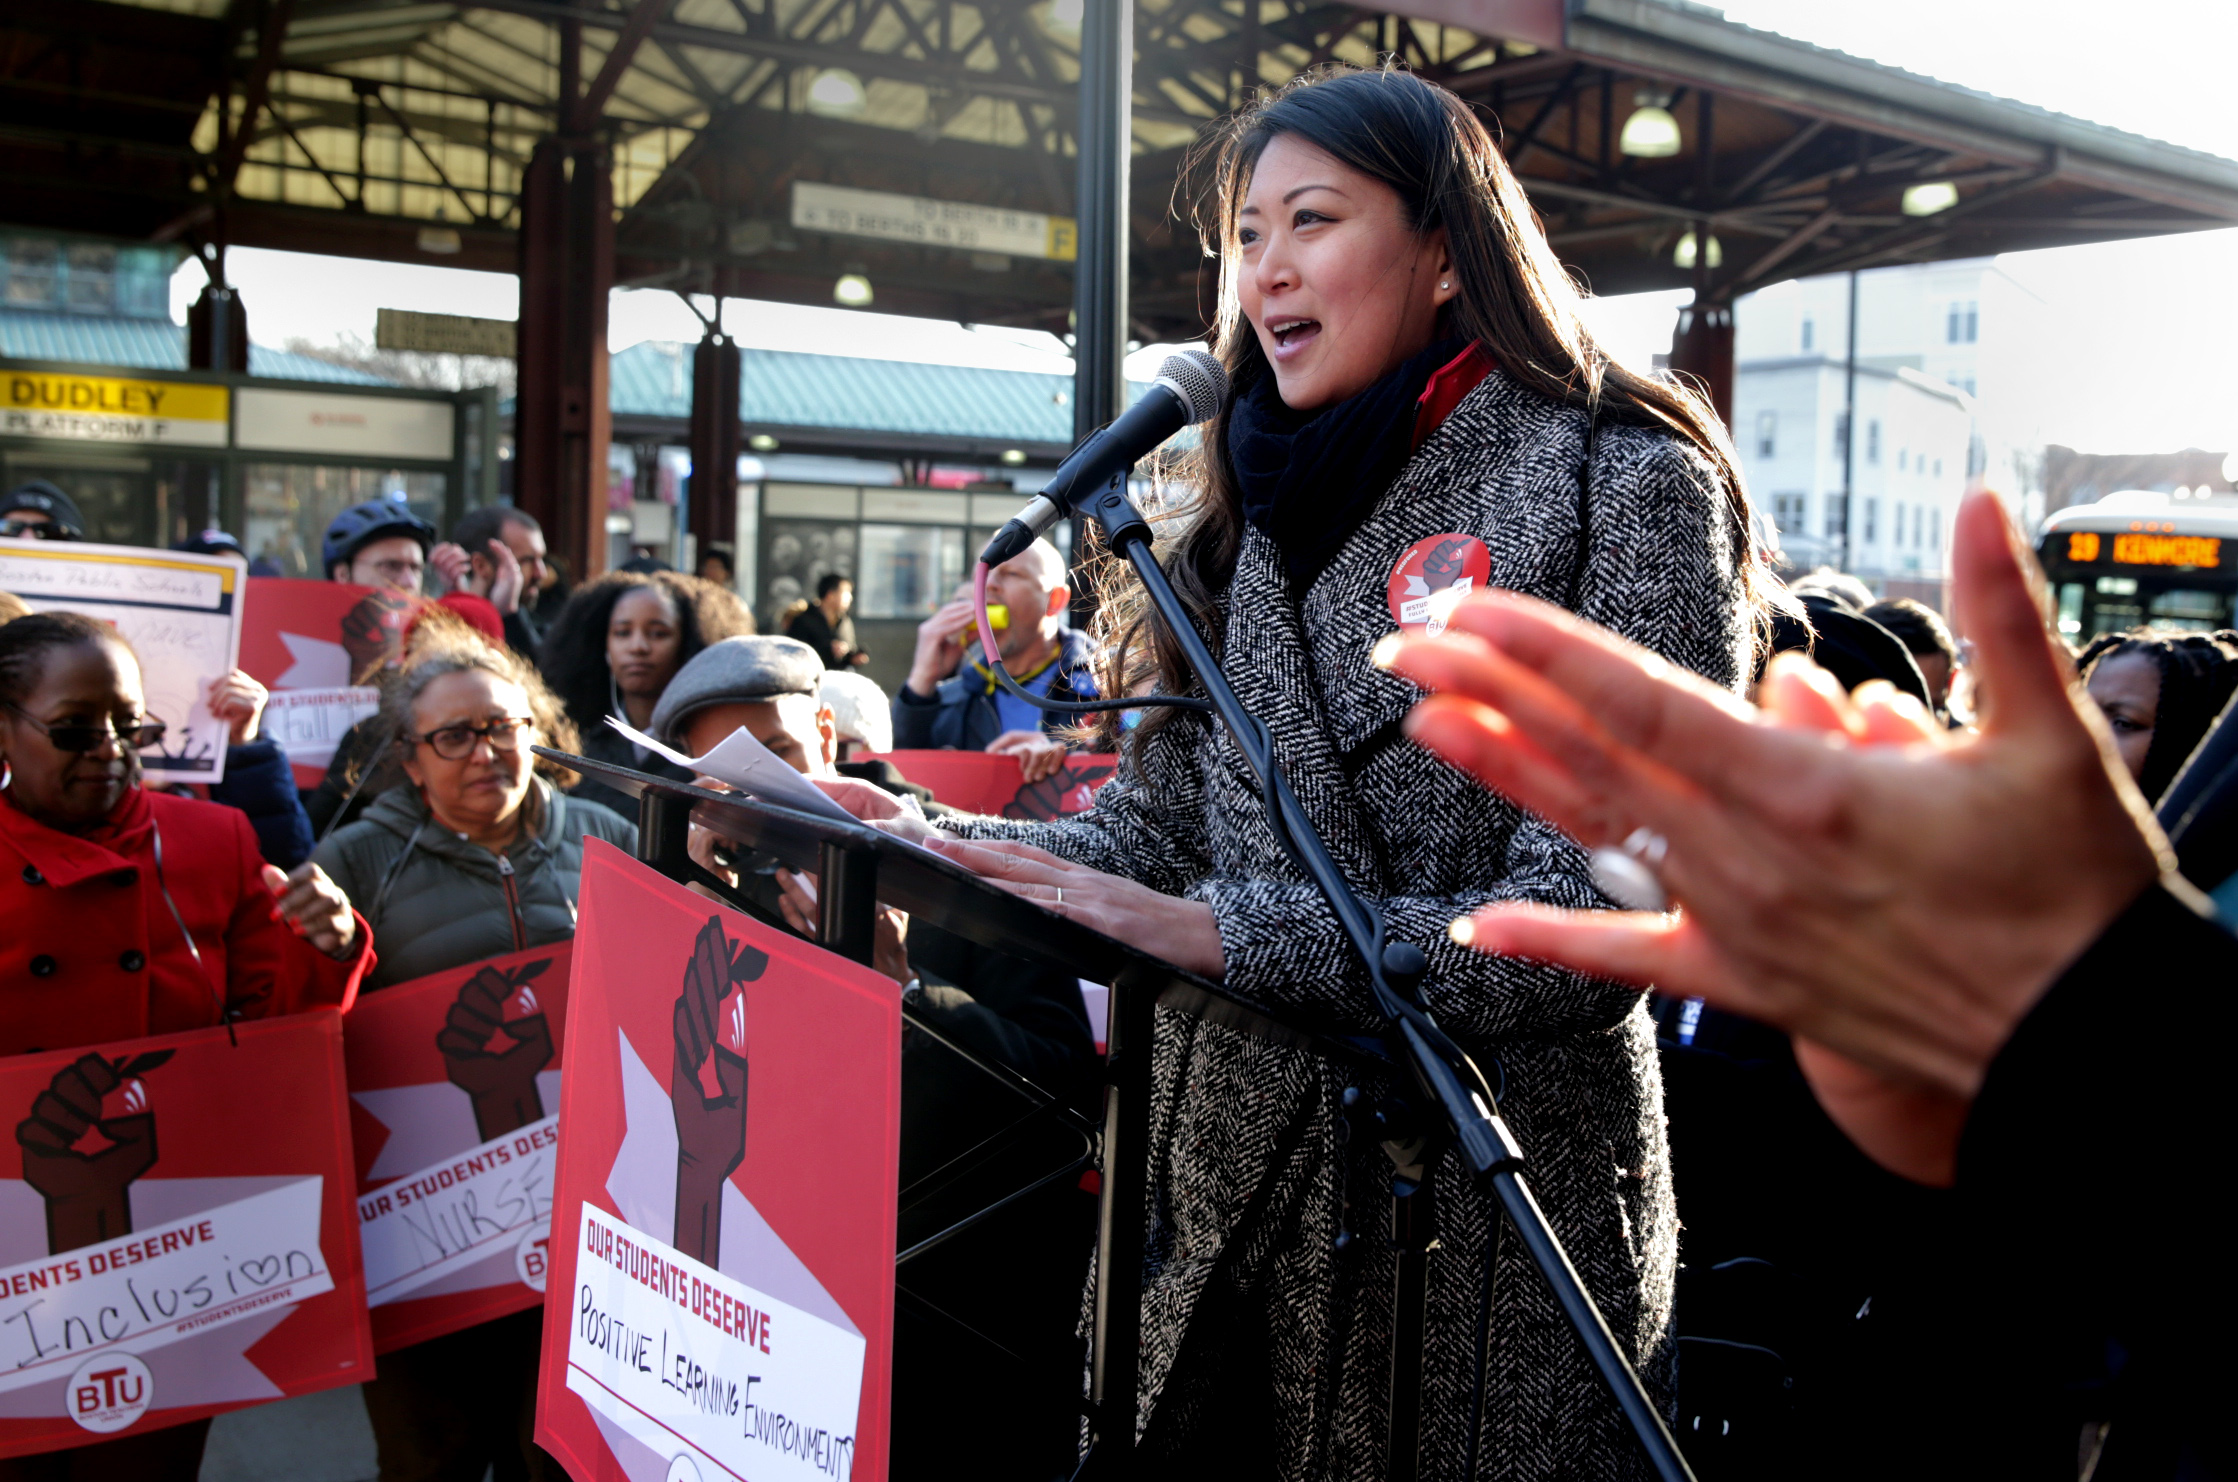 Teachers push for more student services at rally - The